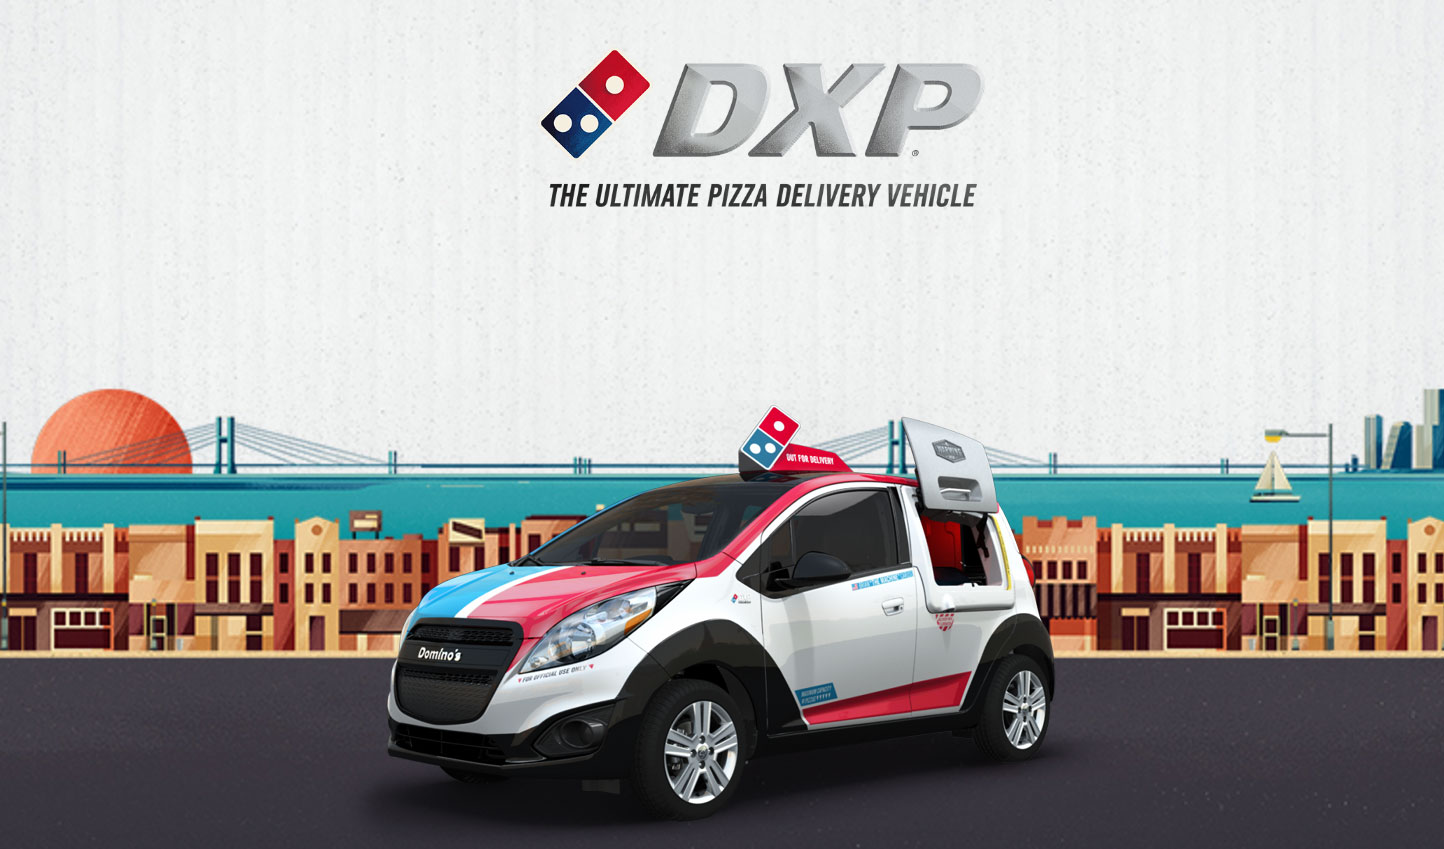 Valley Chevy - Domino's Ferris Bueller's Day Off DXP Chevrolet Sonic Car